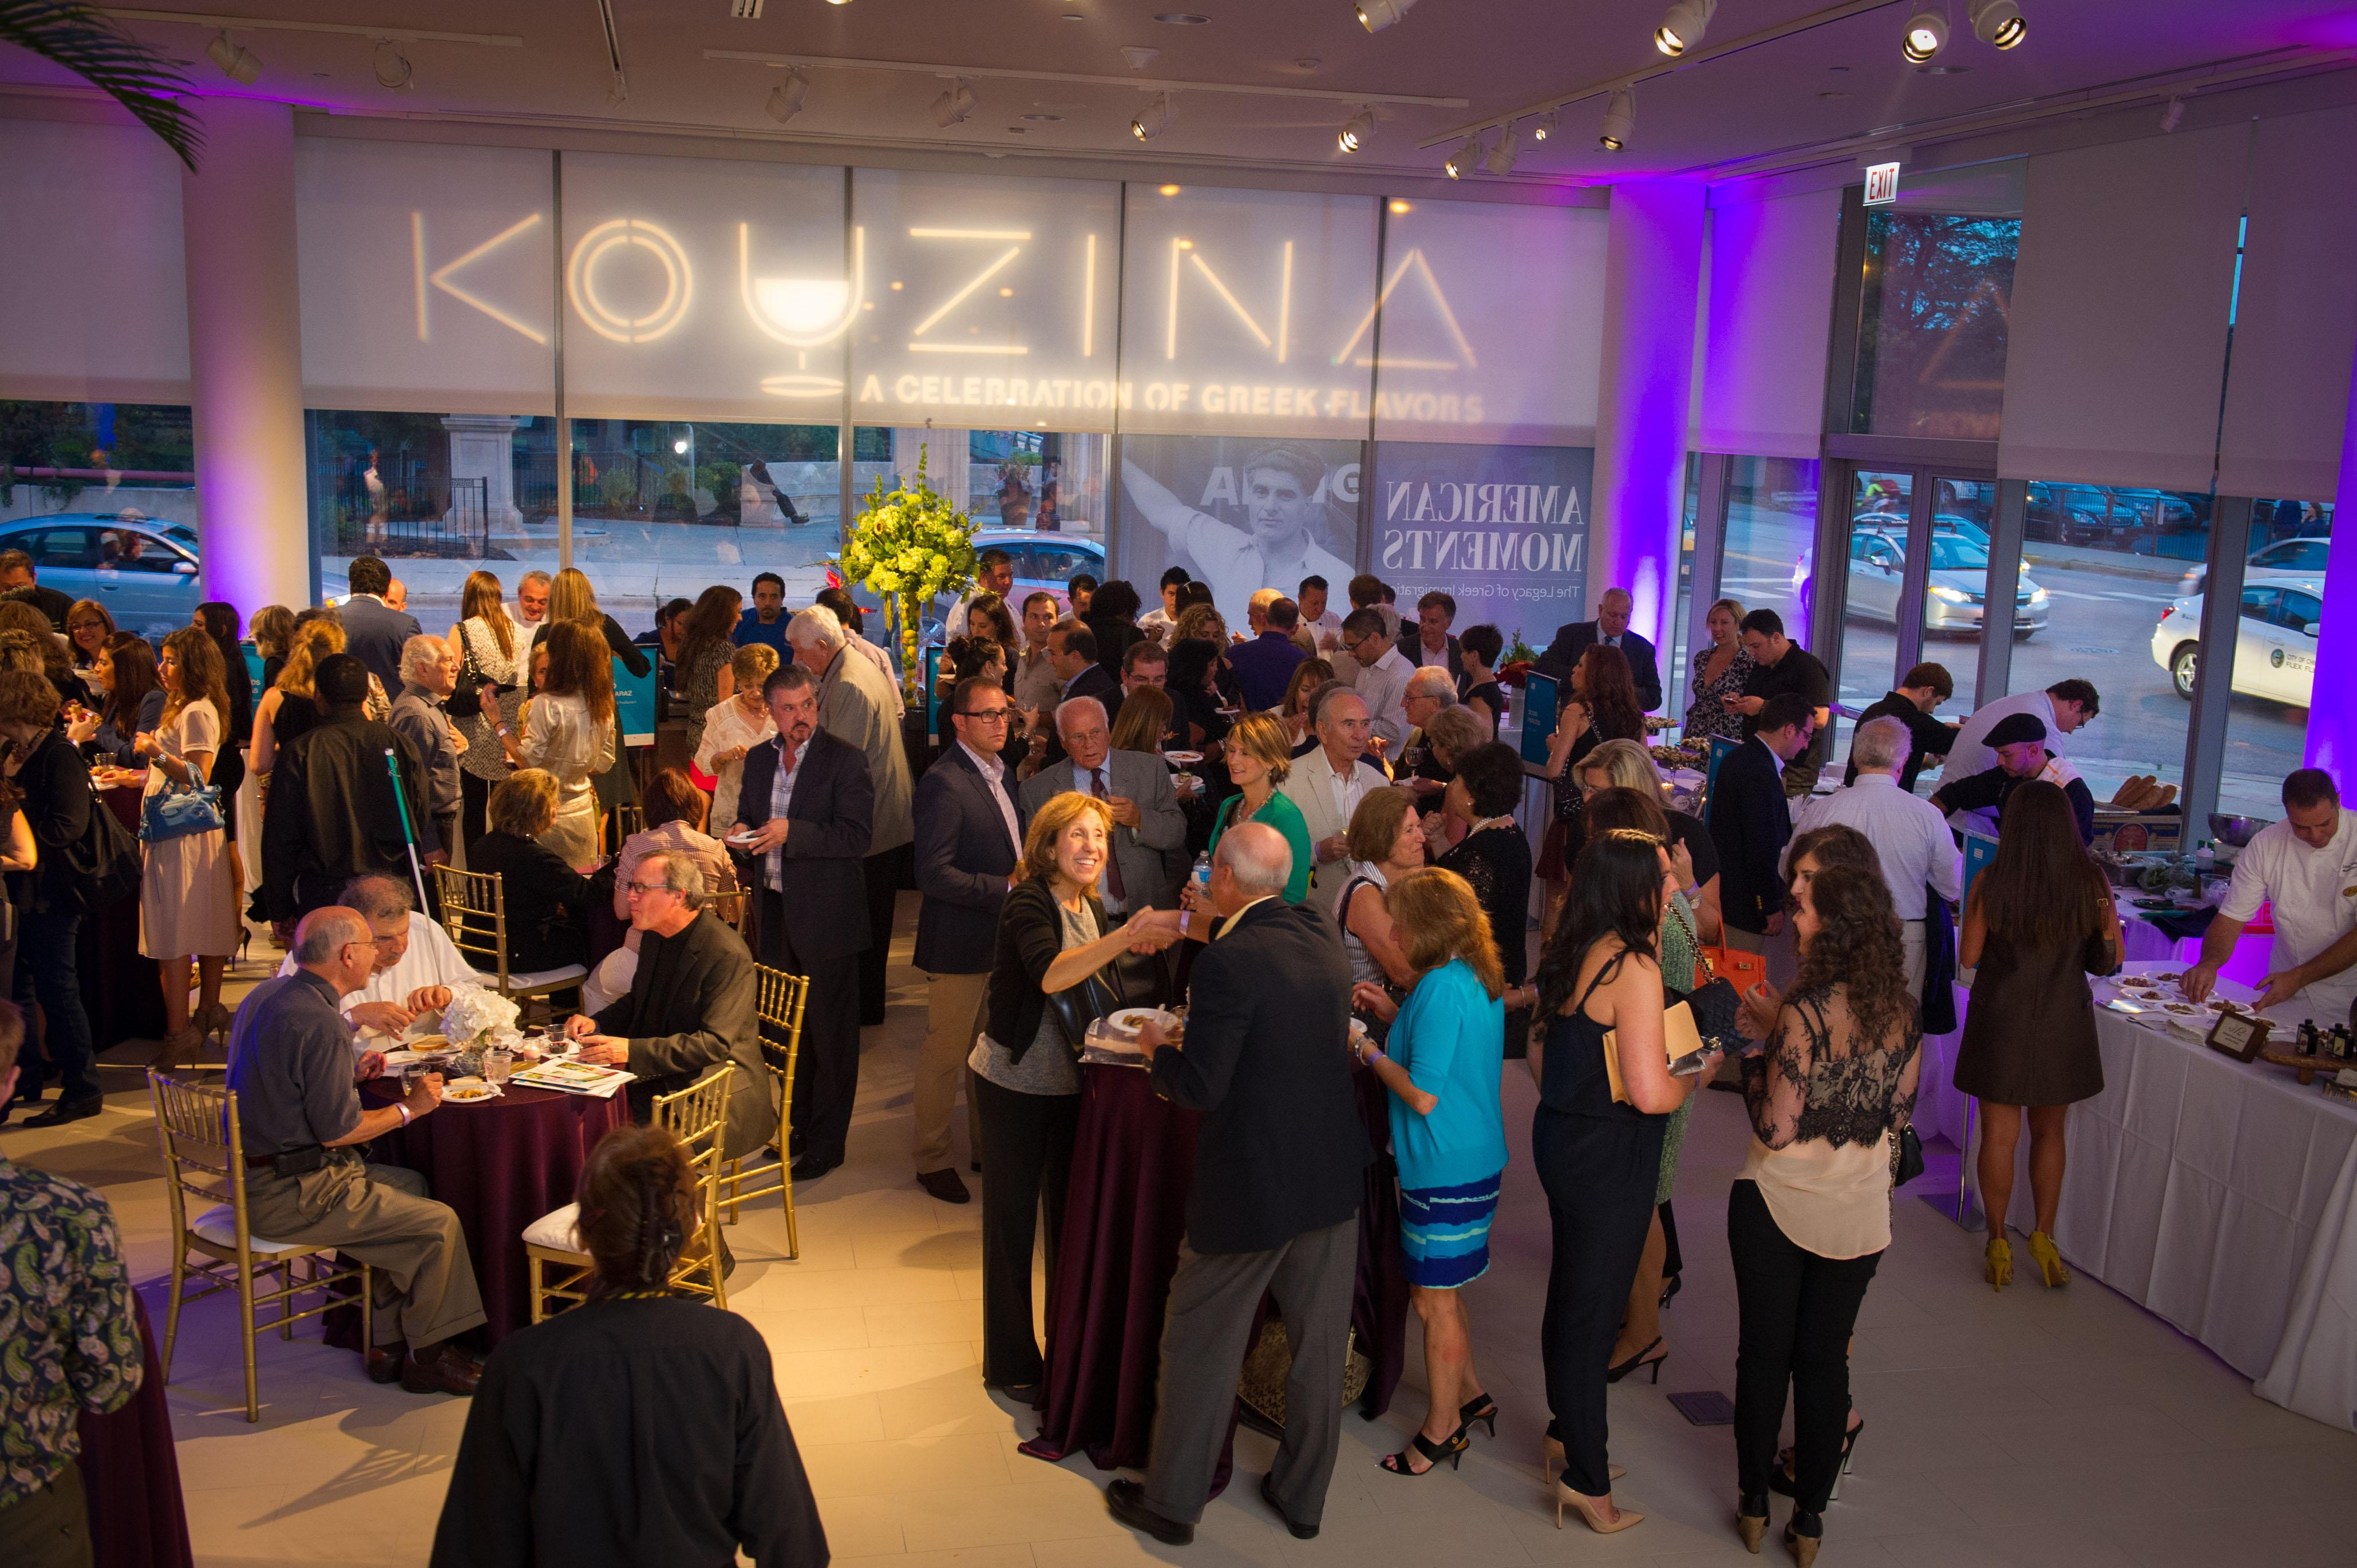 Night at the museum: Raise a glass while raising funds for a local museum at Kouzina. (Courtesy of the National Hellenic Museum)